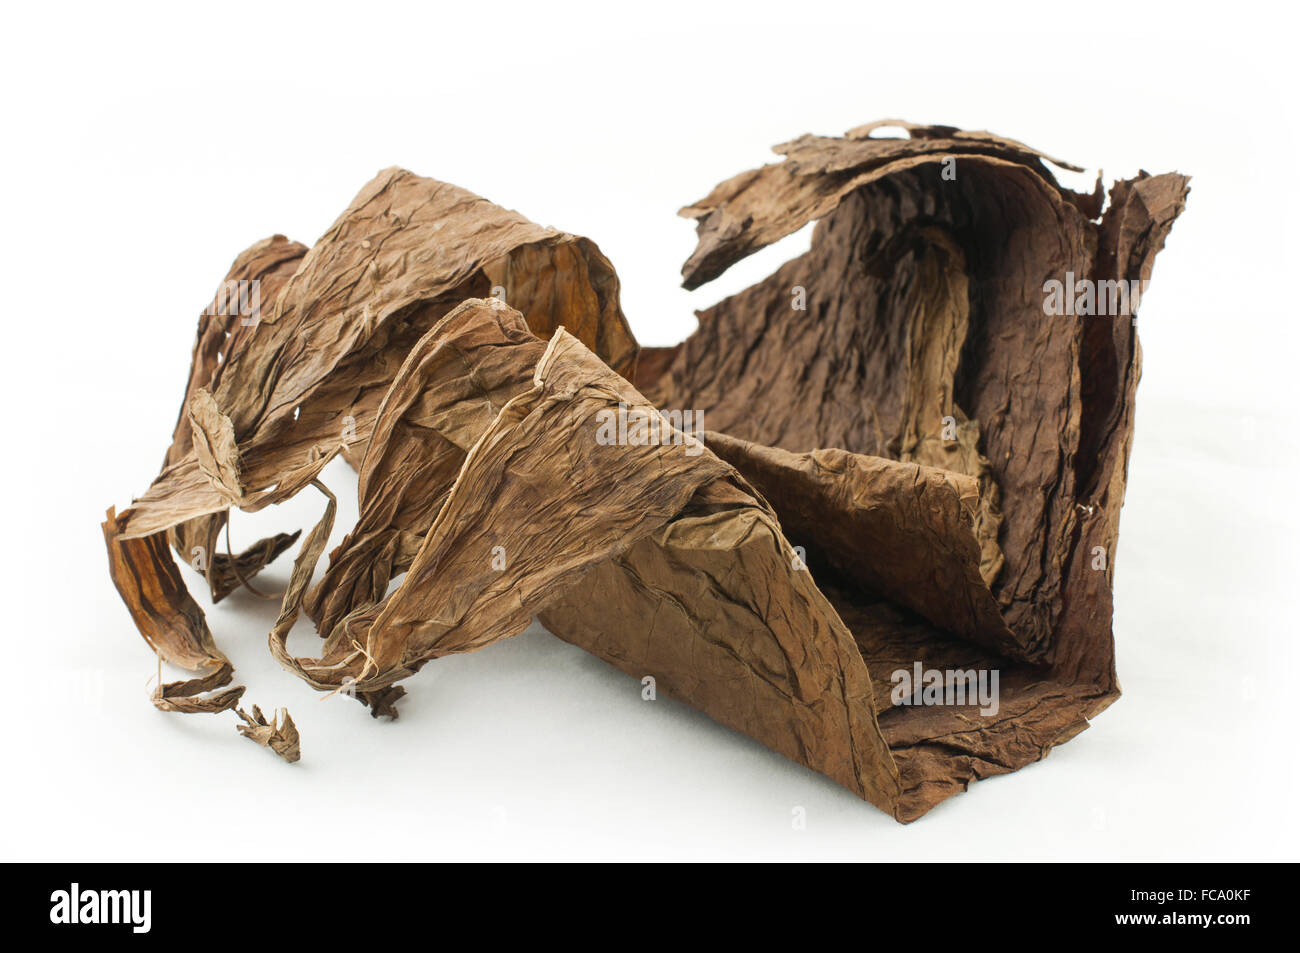 Dried tobacco leaves - Stock Image